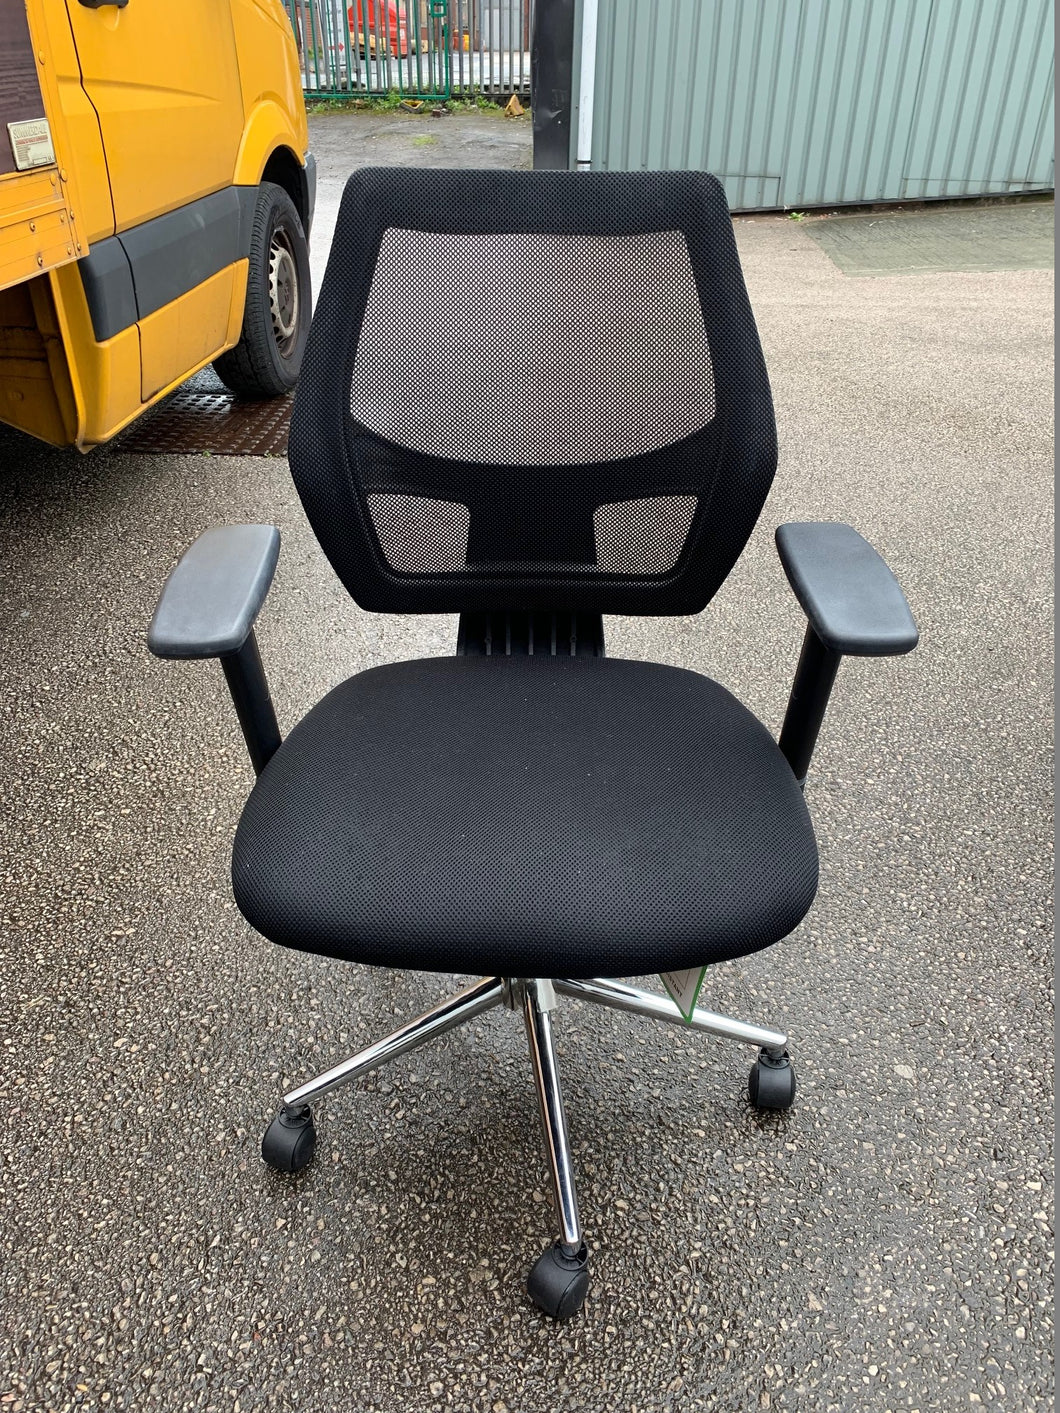 Mesh Back Multi Function Office Chair Black - Flogit2us.com